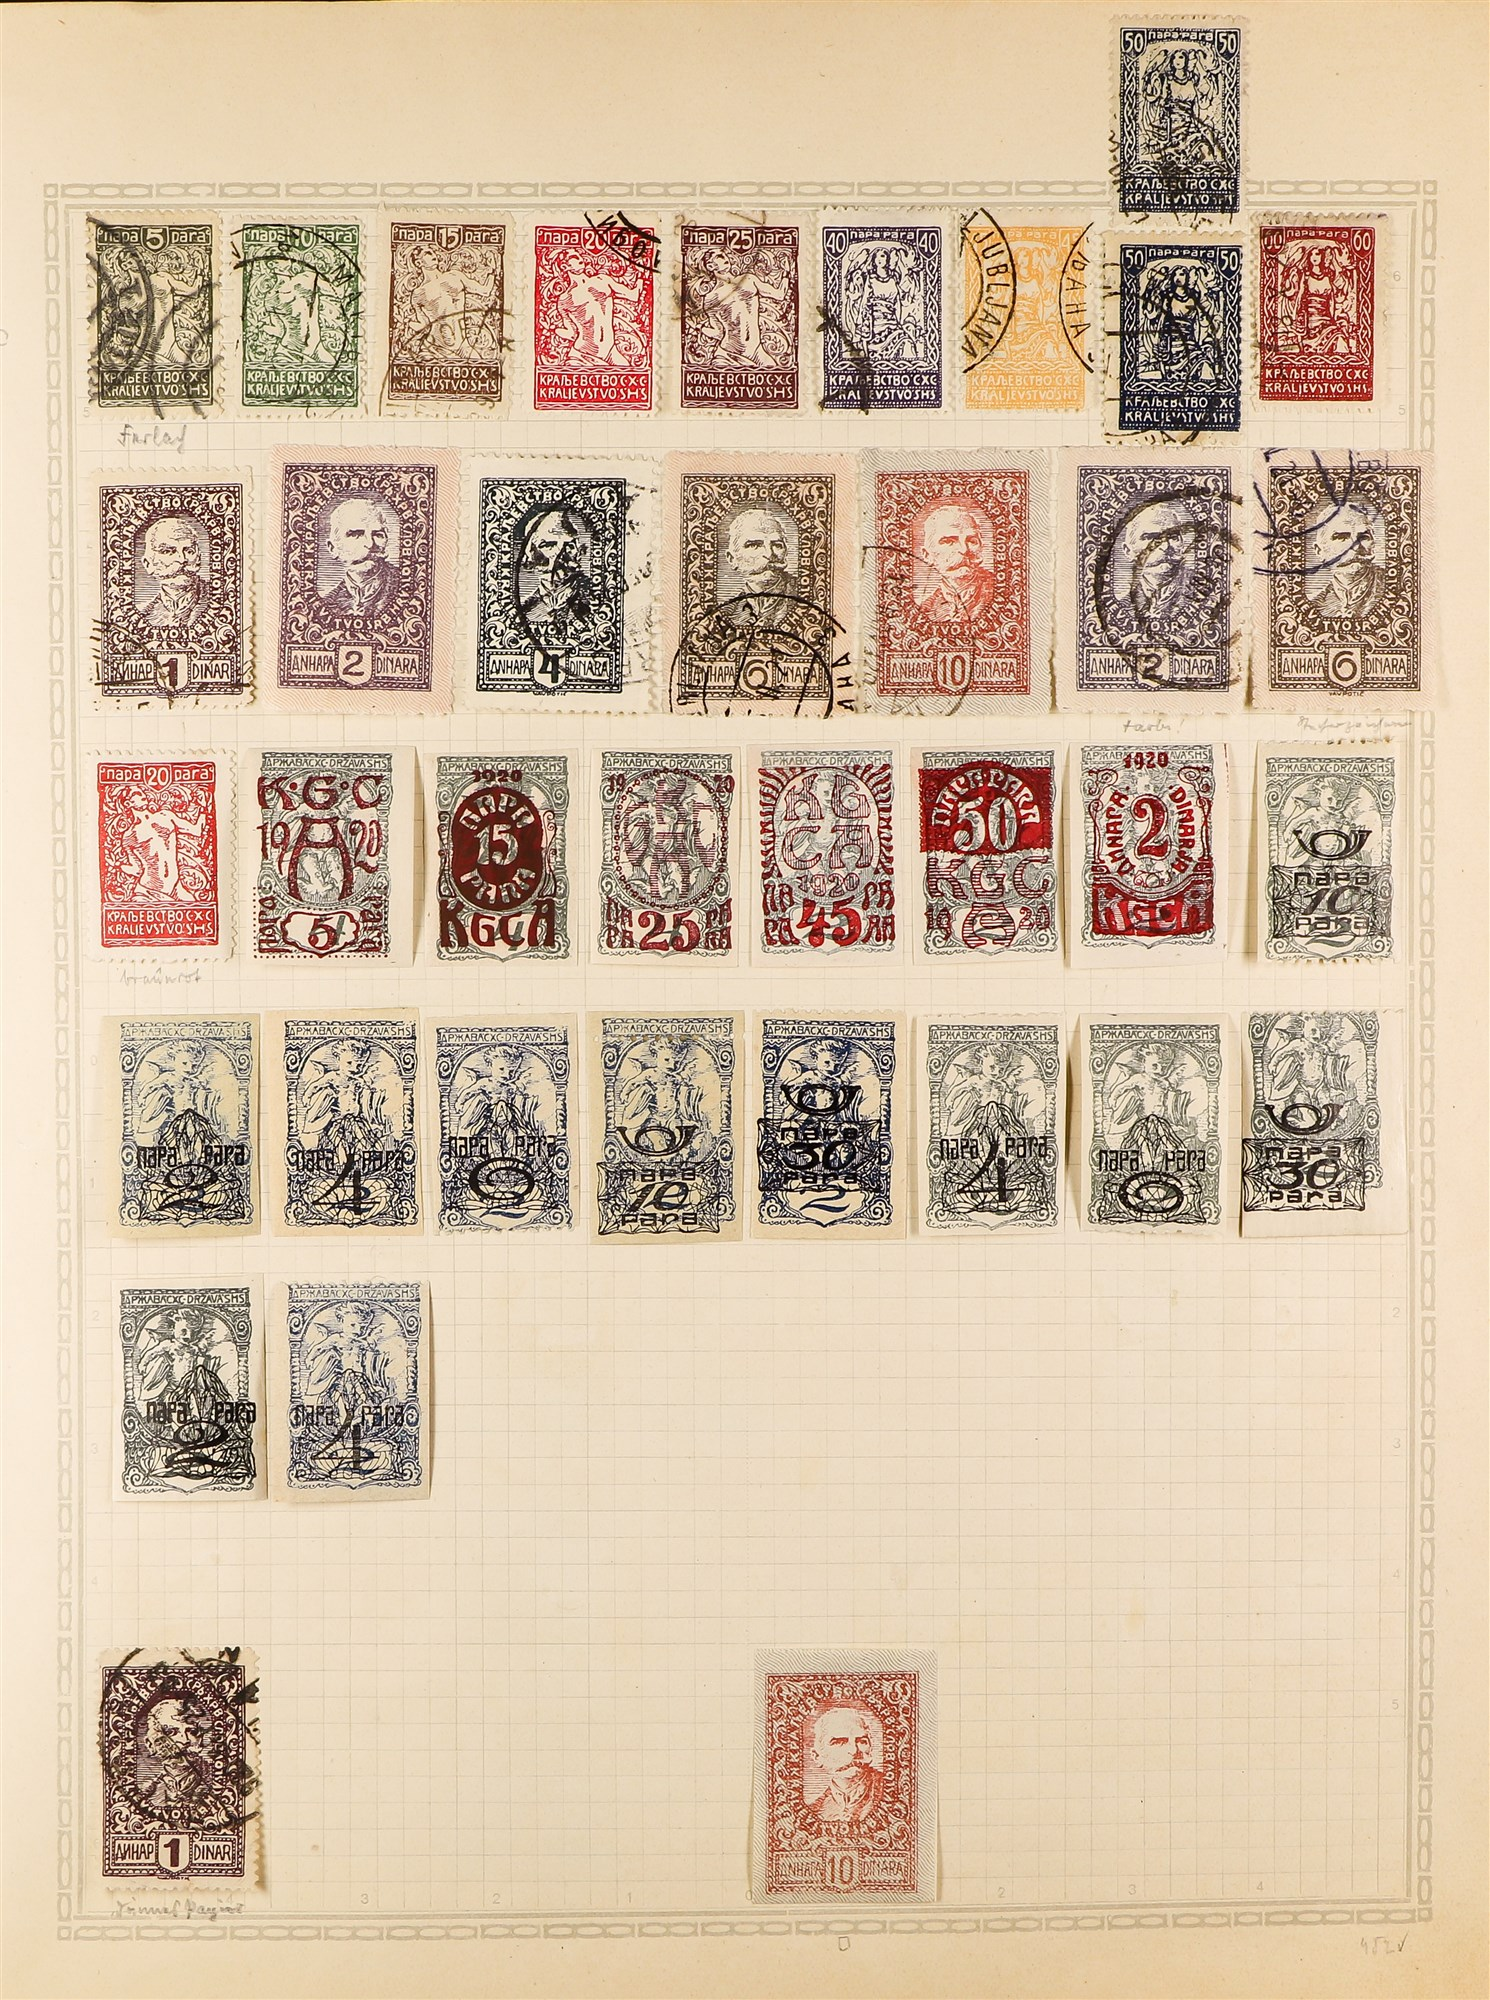 YUGOSLAVIA 1919-80 COLLECTION of mint and used issues in an album, incl. extensive Chainbreakers, - Image 4 of 17